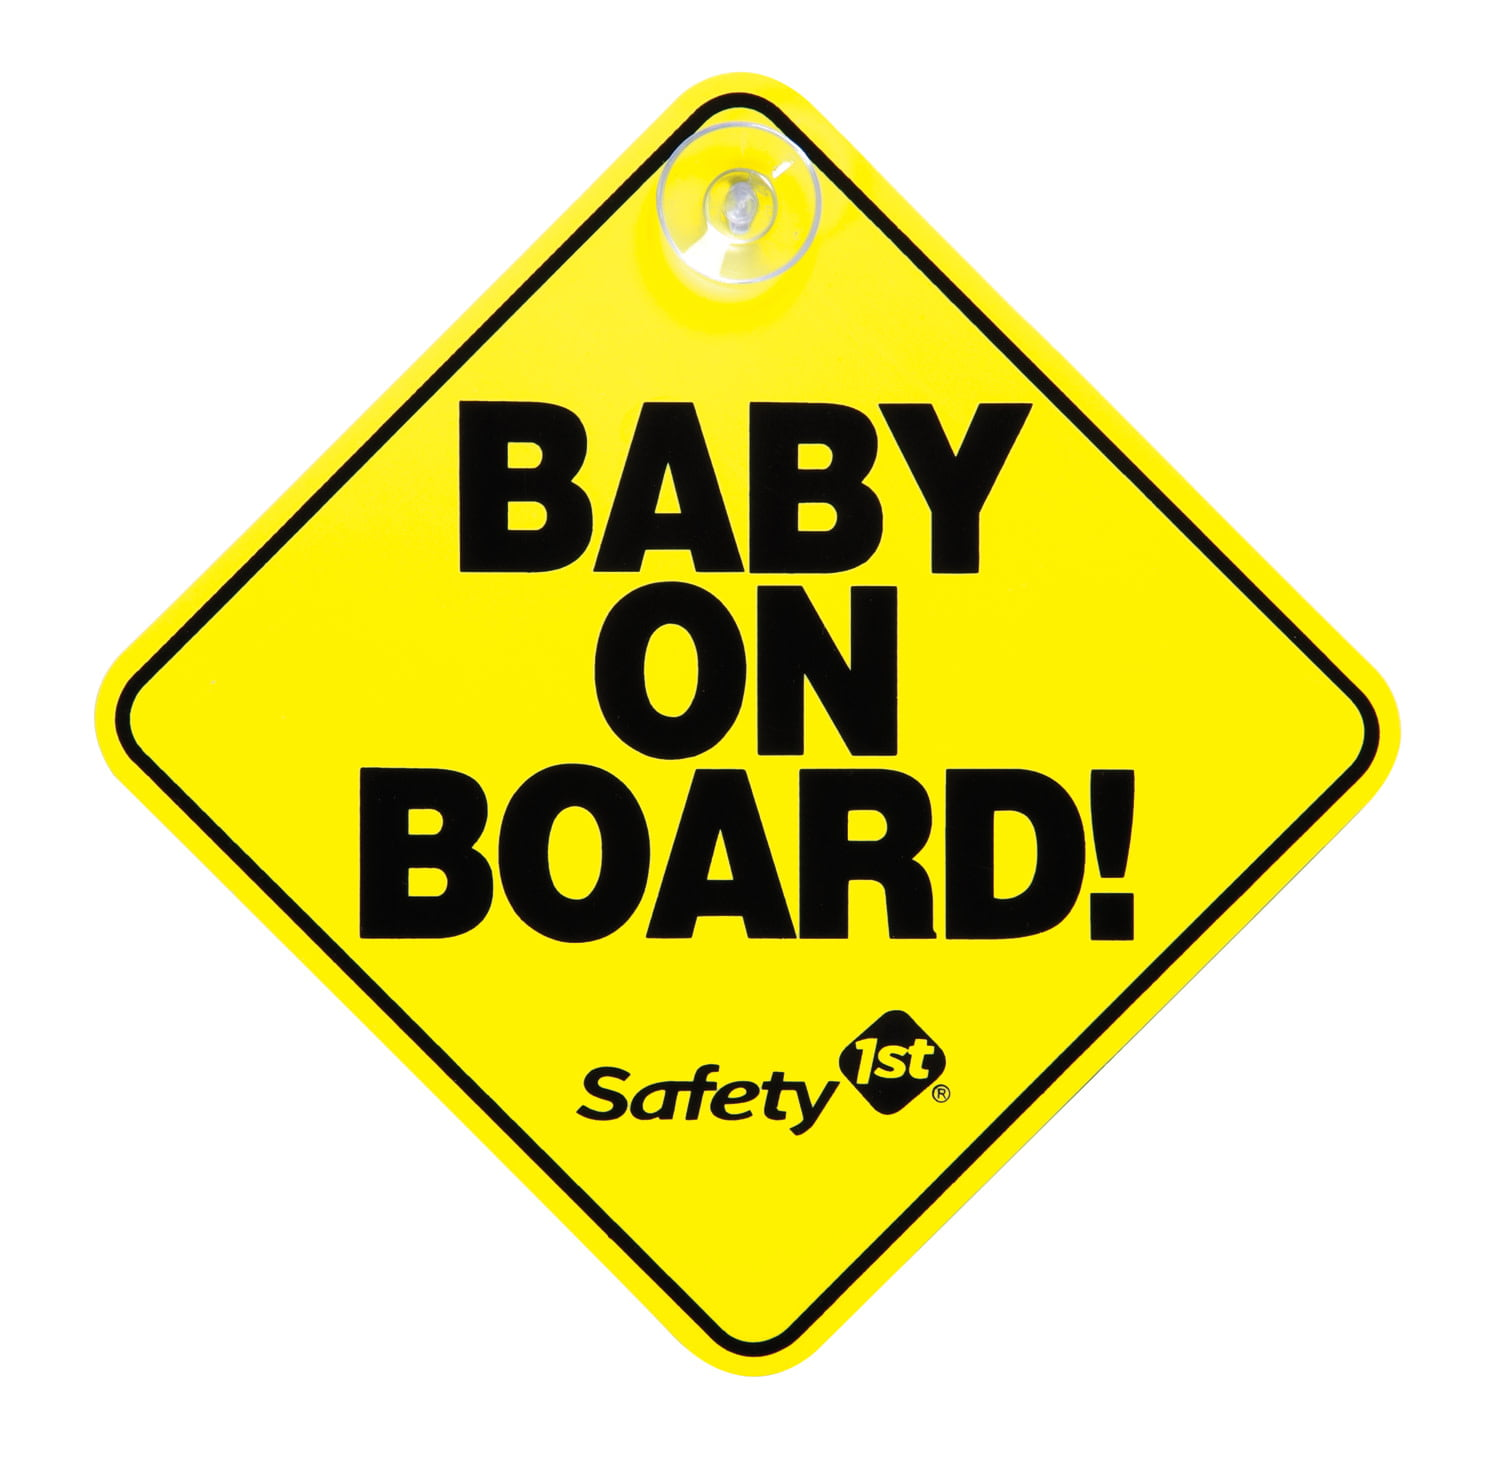 Twins On Board Car Sign Suction Cup Car Window Sign Baby On Board Sign for Mum /& Baby